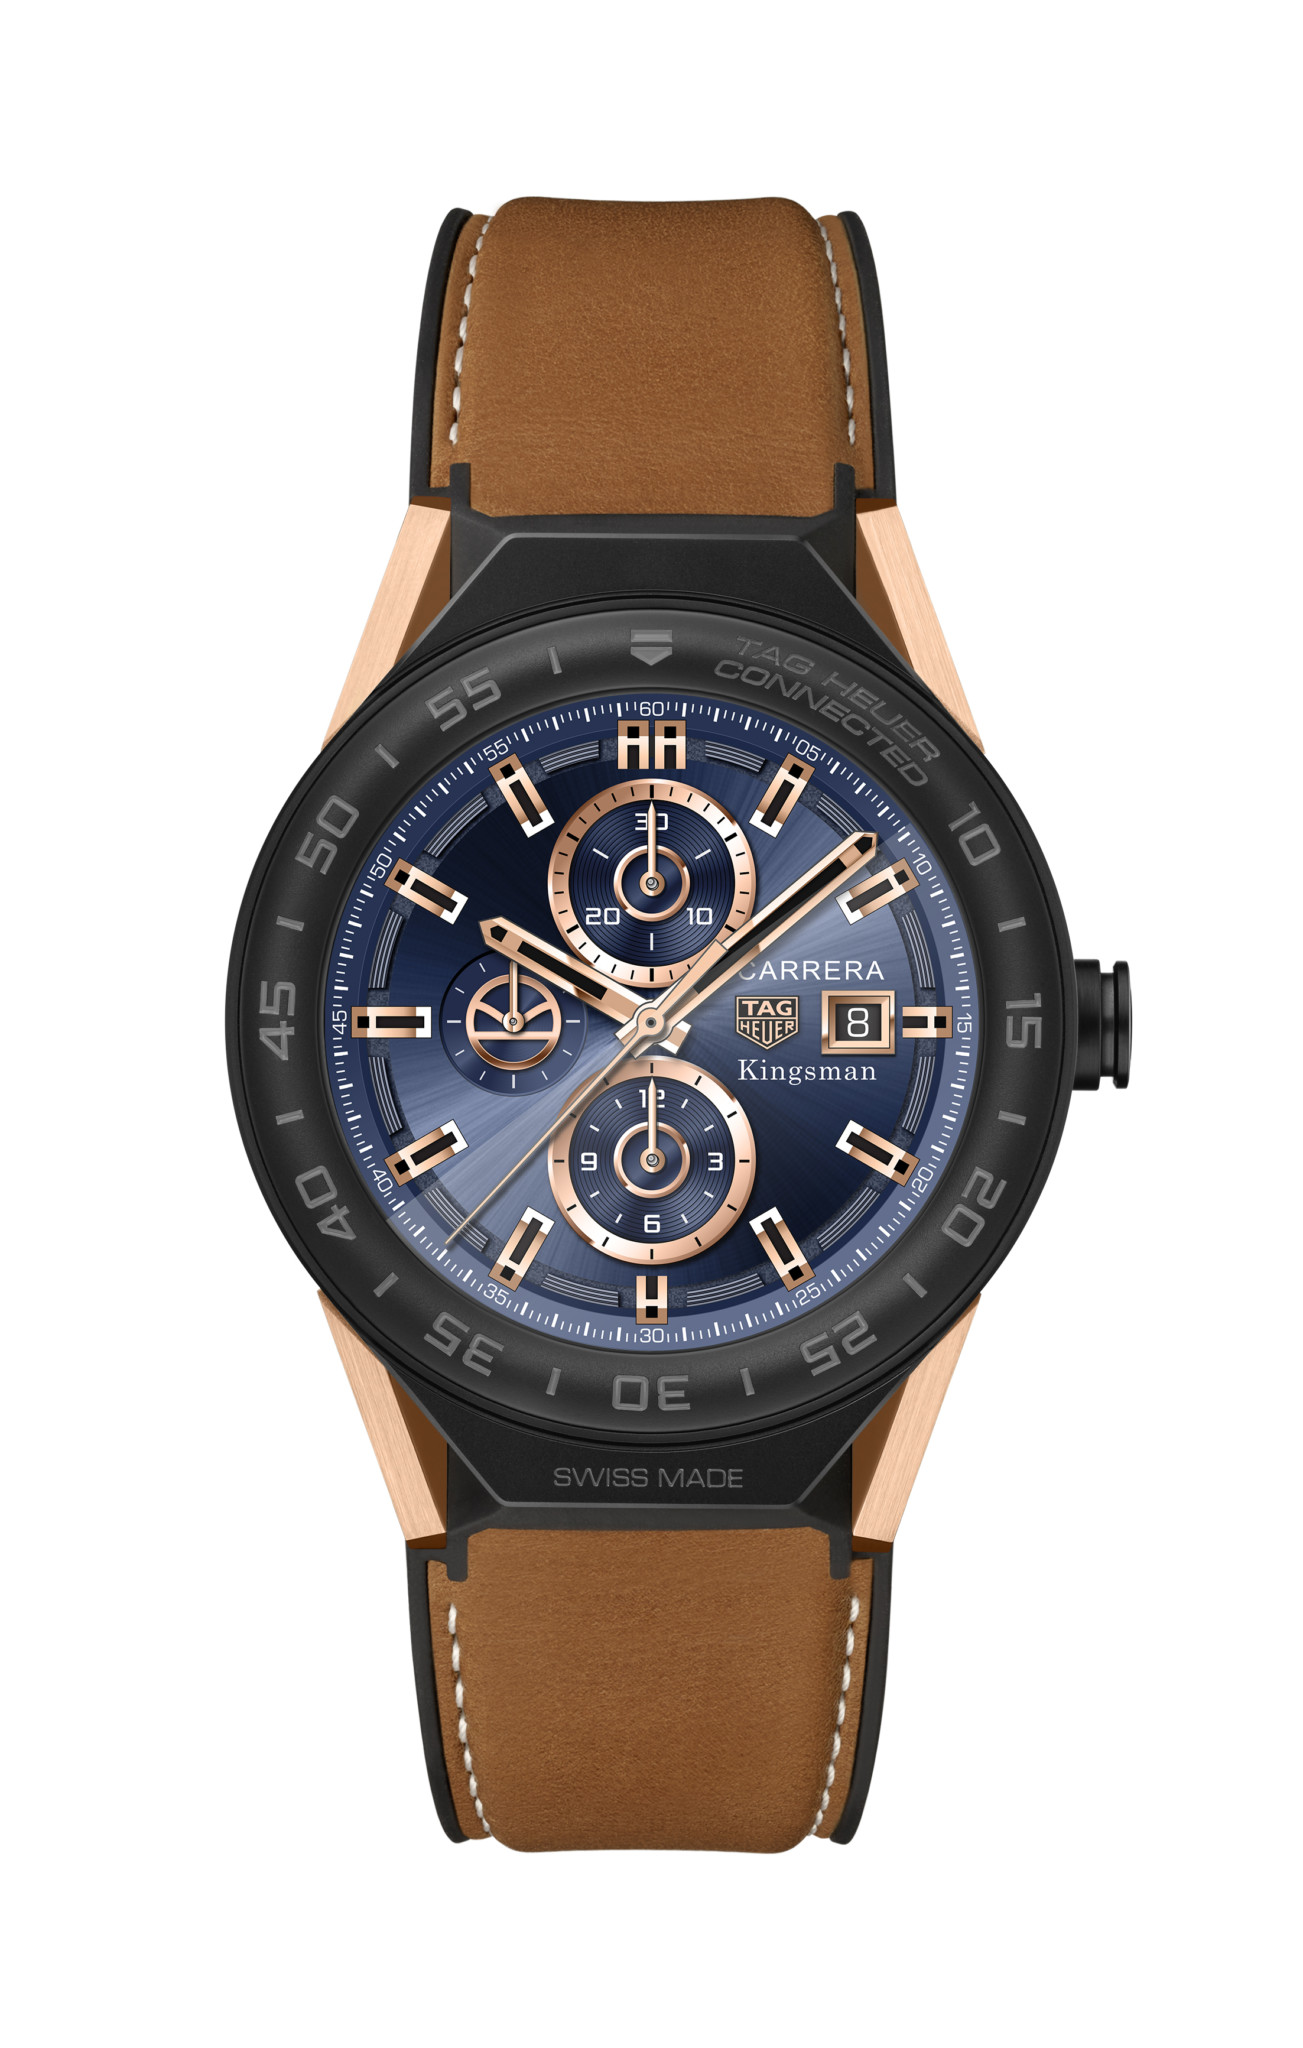 TAG Heuer SBF8A8023.32EB0103 KINGSMAN SPECIAL EDITION - BROWN LEATHER STRAP 2017 HDAllumé